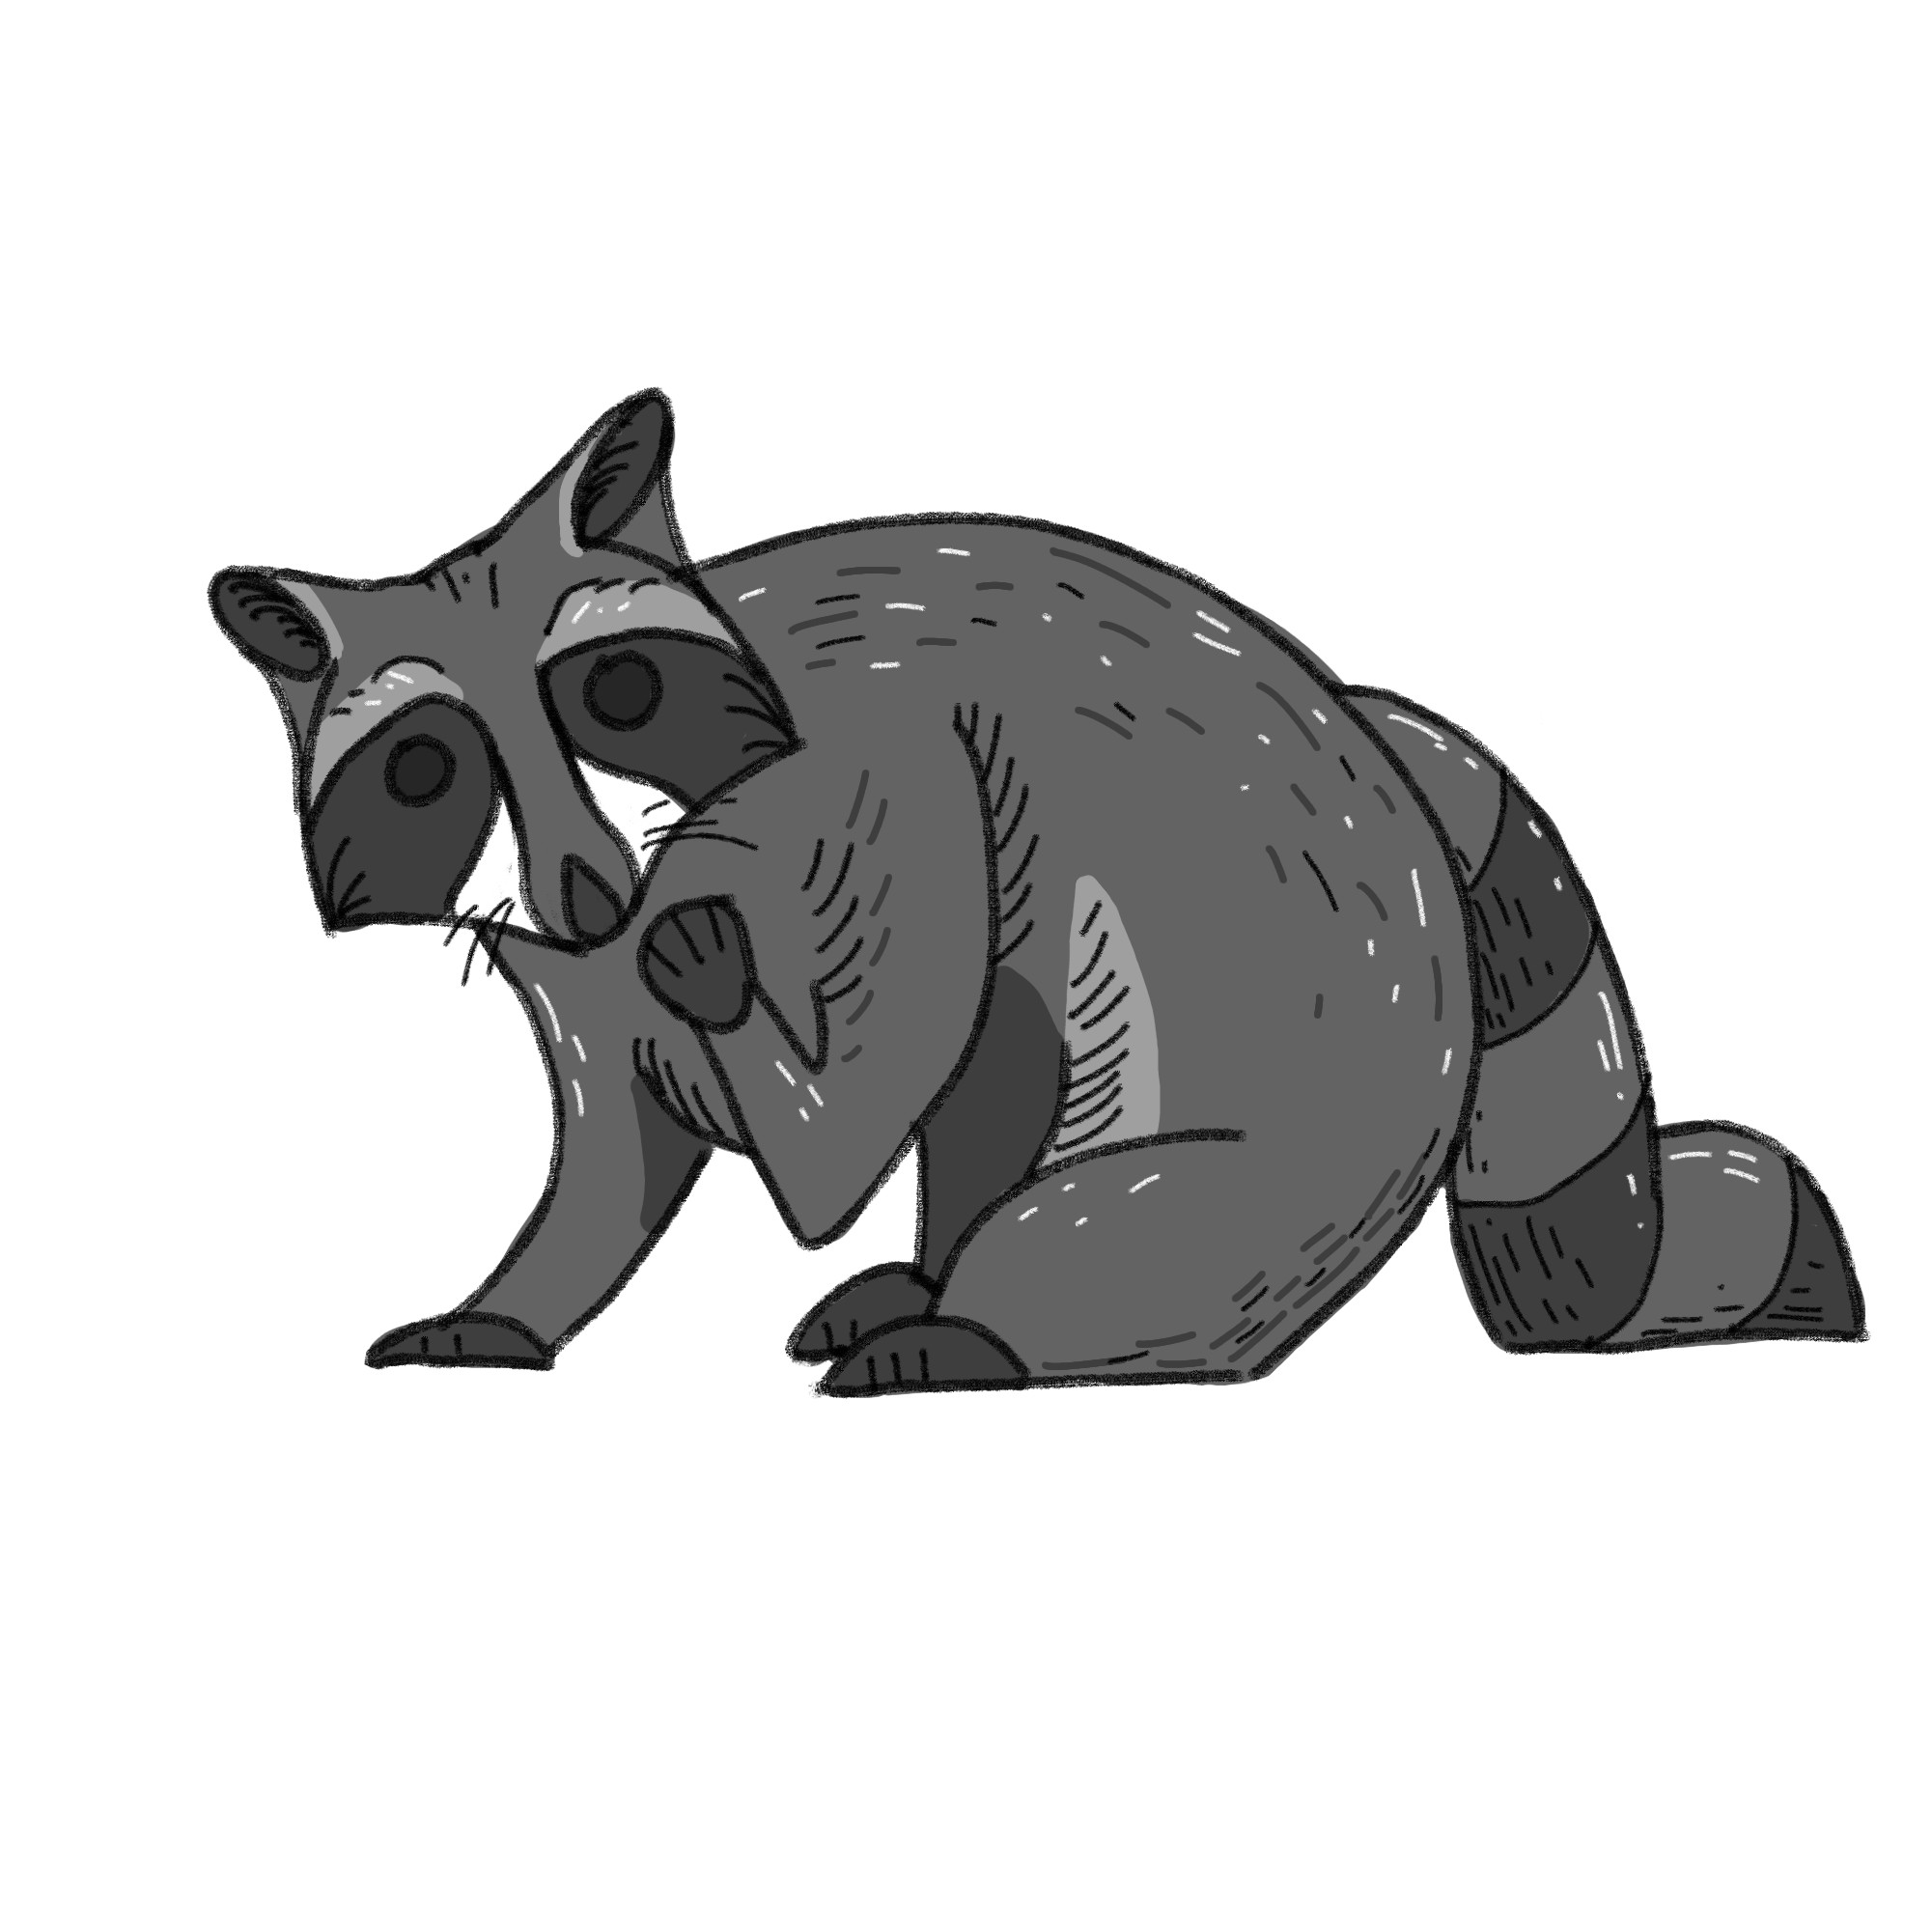 Final picture of completed sketch of raccoon with shading